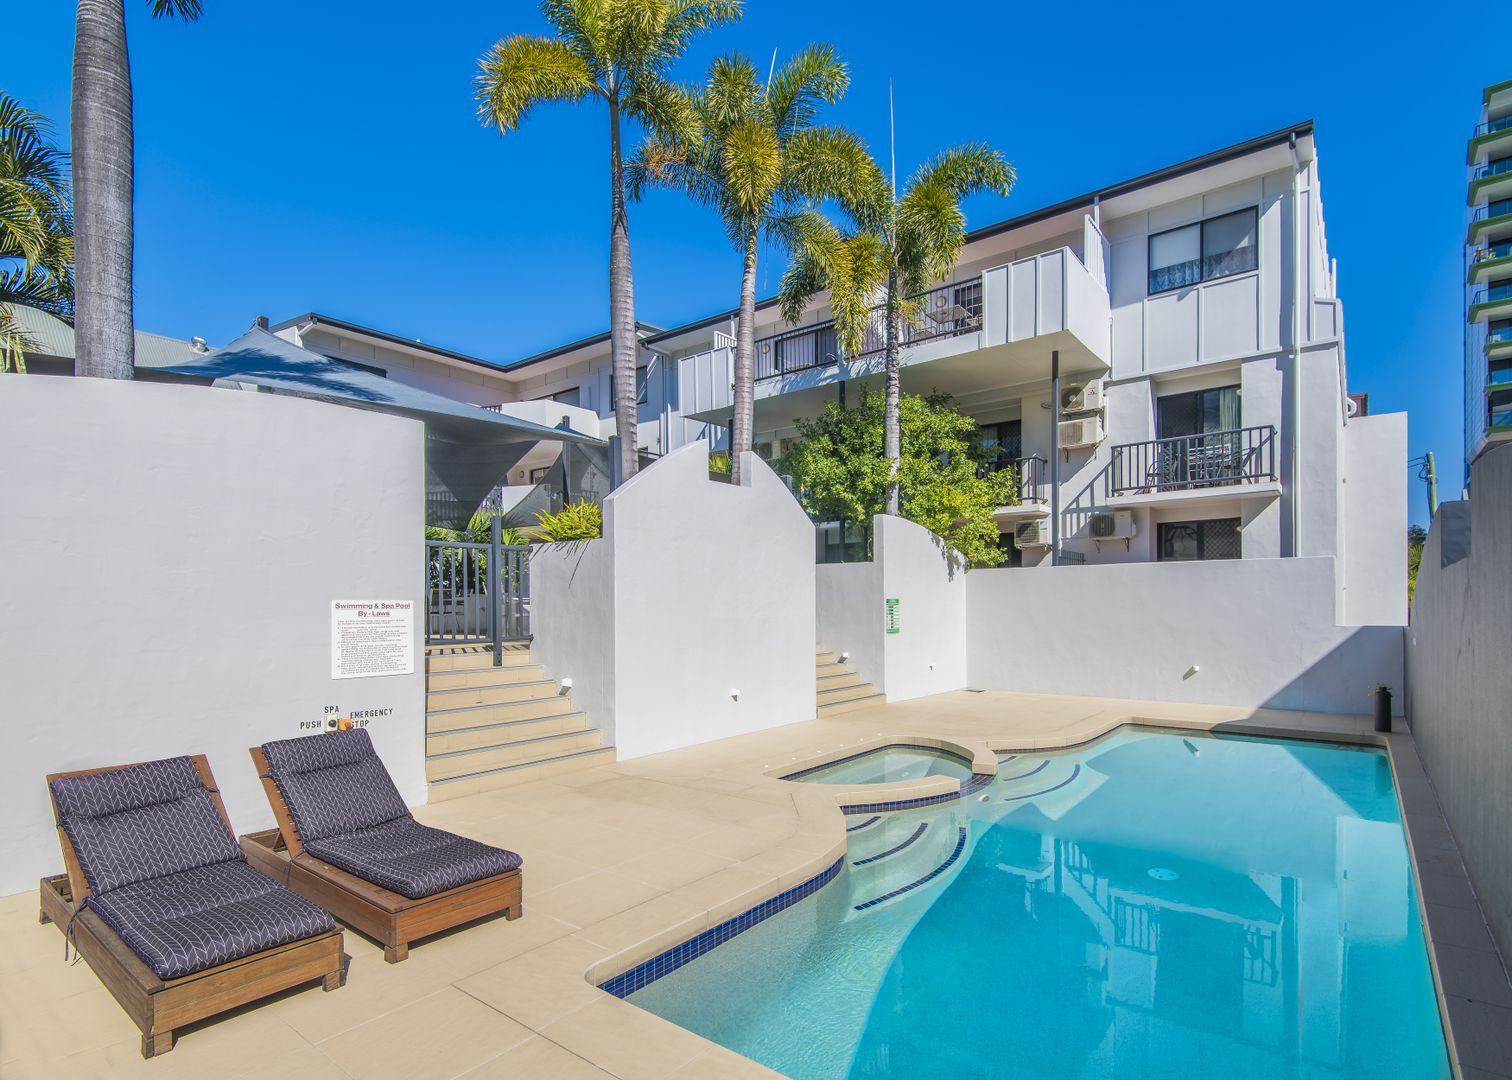 12 & 12A/49 Russell Street, South Brisbane QLD 4101, Image 0